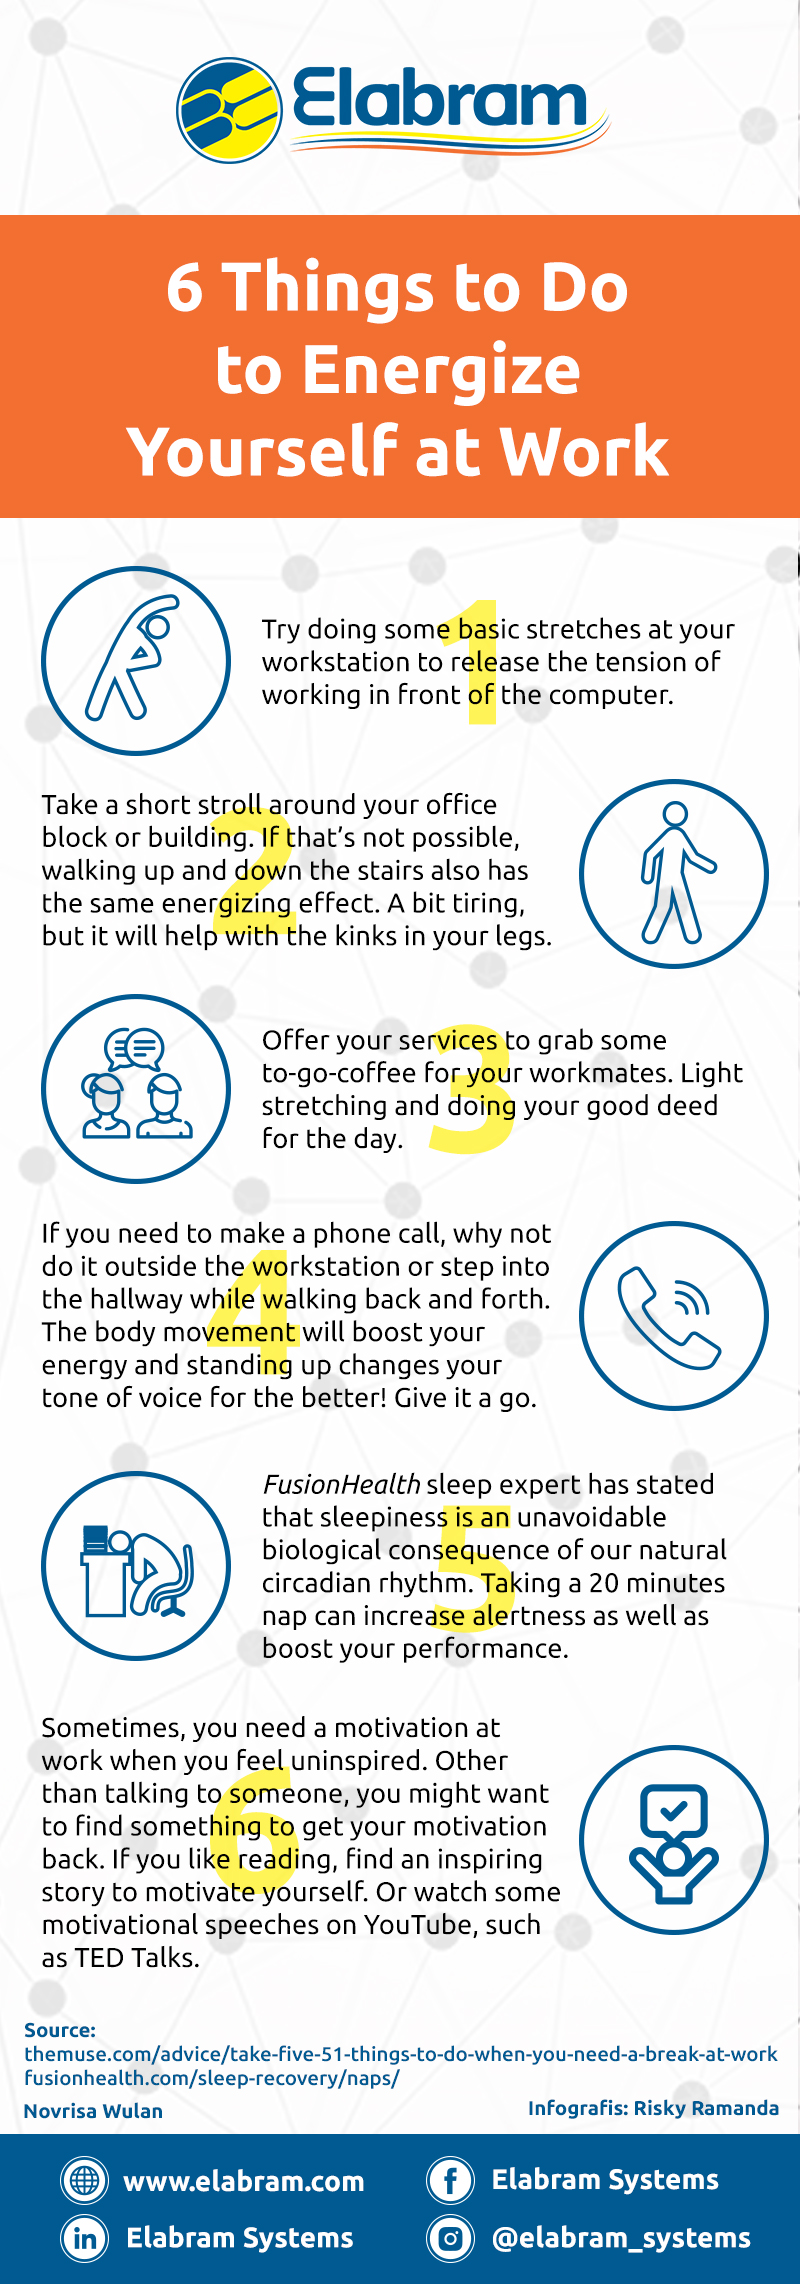 How to Energize Yourself at Work